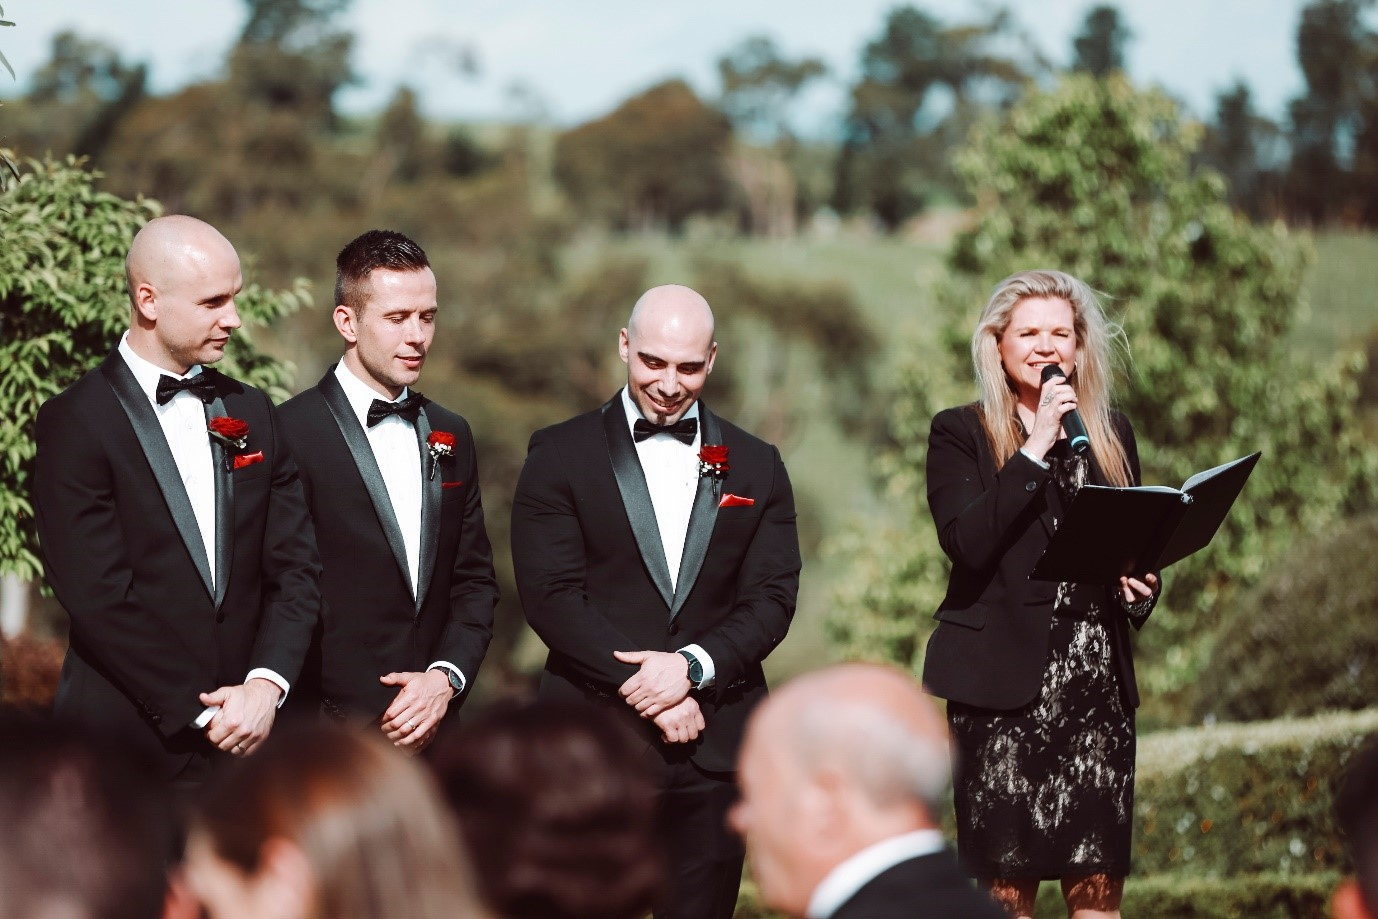 Julie Byrne Wedding Celebrant - Anna and Shaun's Wedding at The Vines of the Yarra Valley